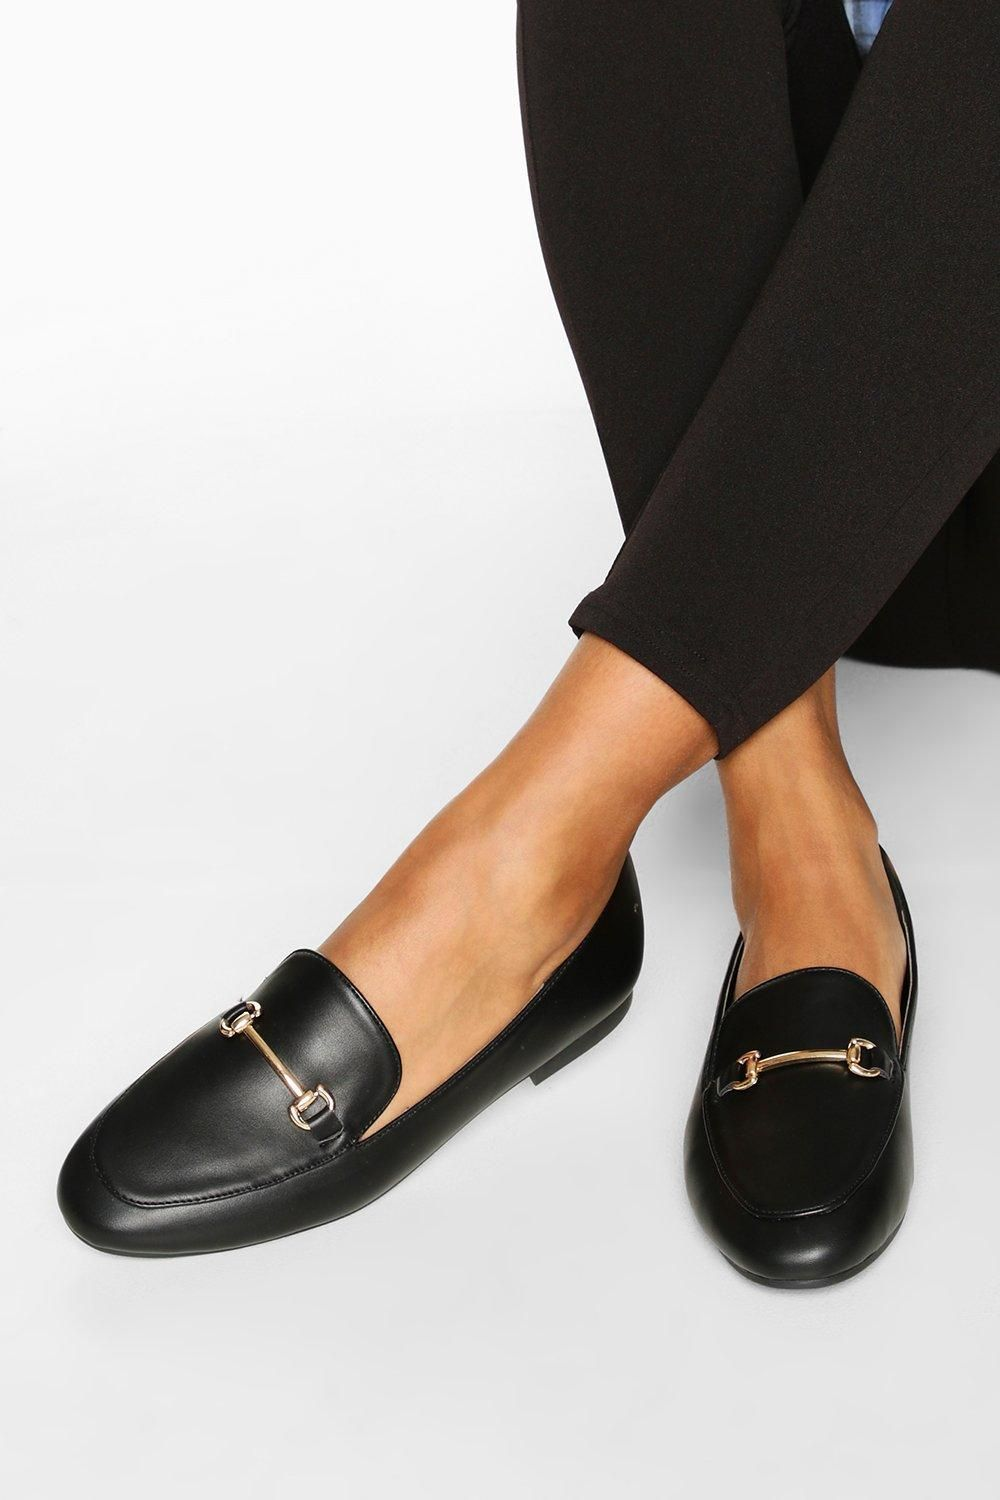 T Bar Basic Loafers Boohoo In 2021 Work Shoes Women Black Loafers Women Loafers Black [ 1500 x 1000 Pixel ]